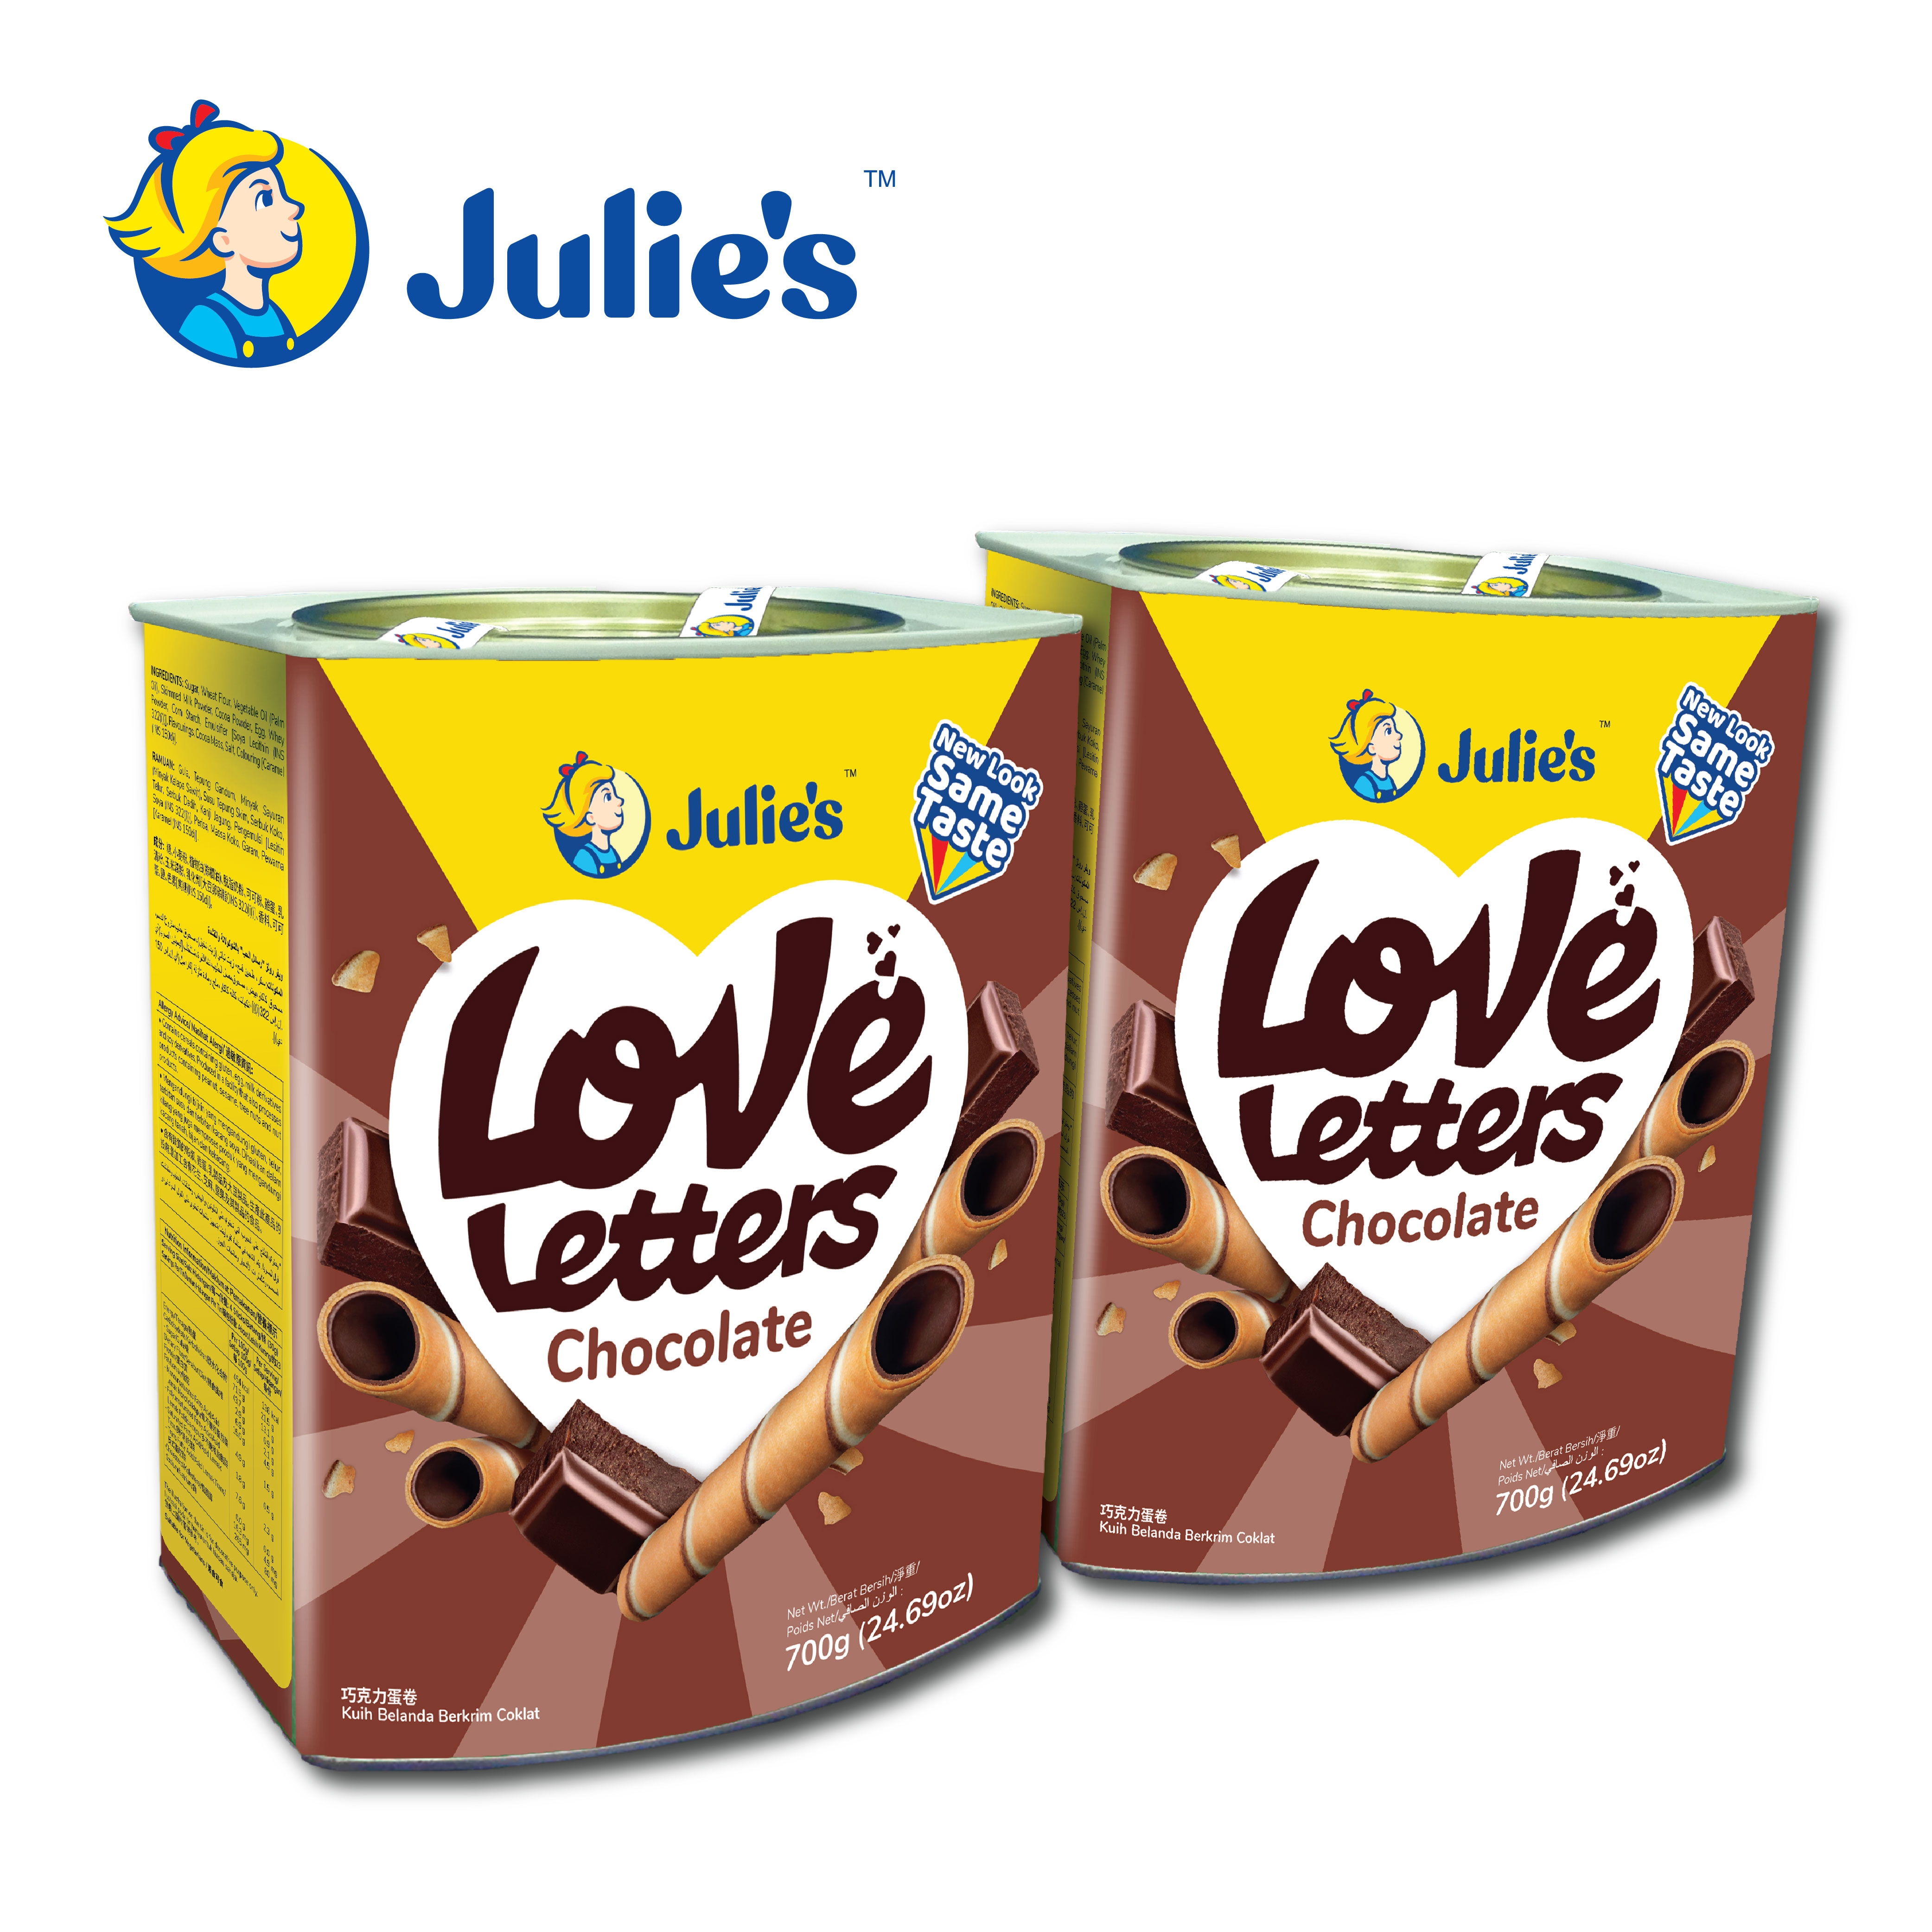 Julie\'s Love Letters Chocolate 700g x 2 tins [Inner Pack Online Exclusive]